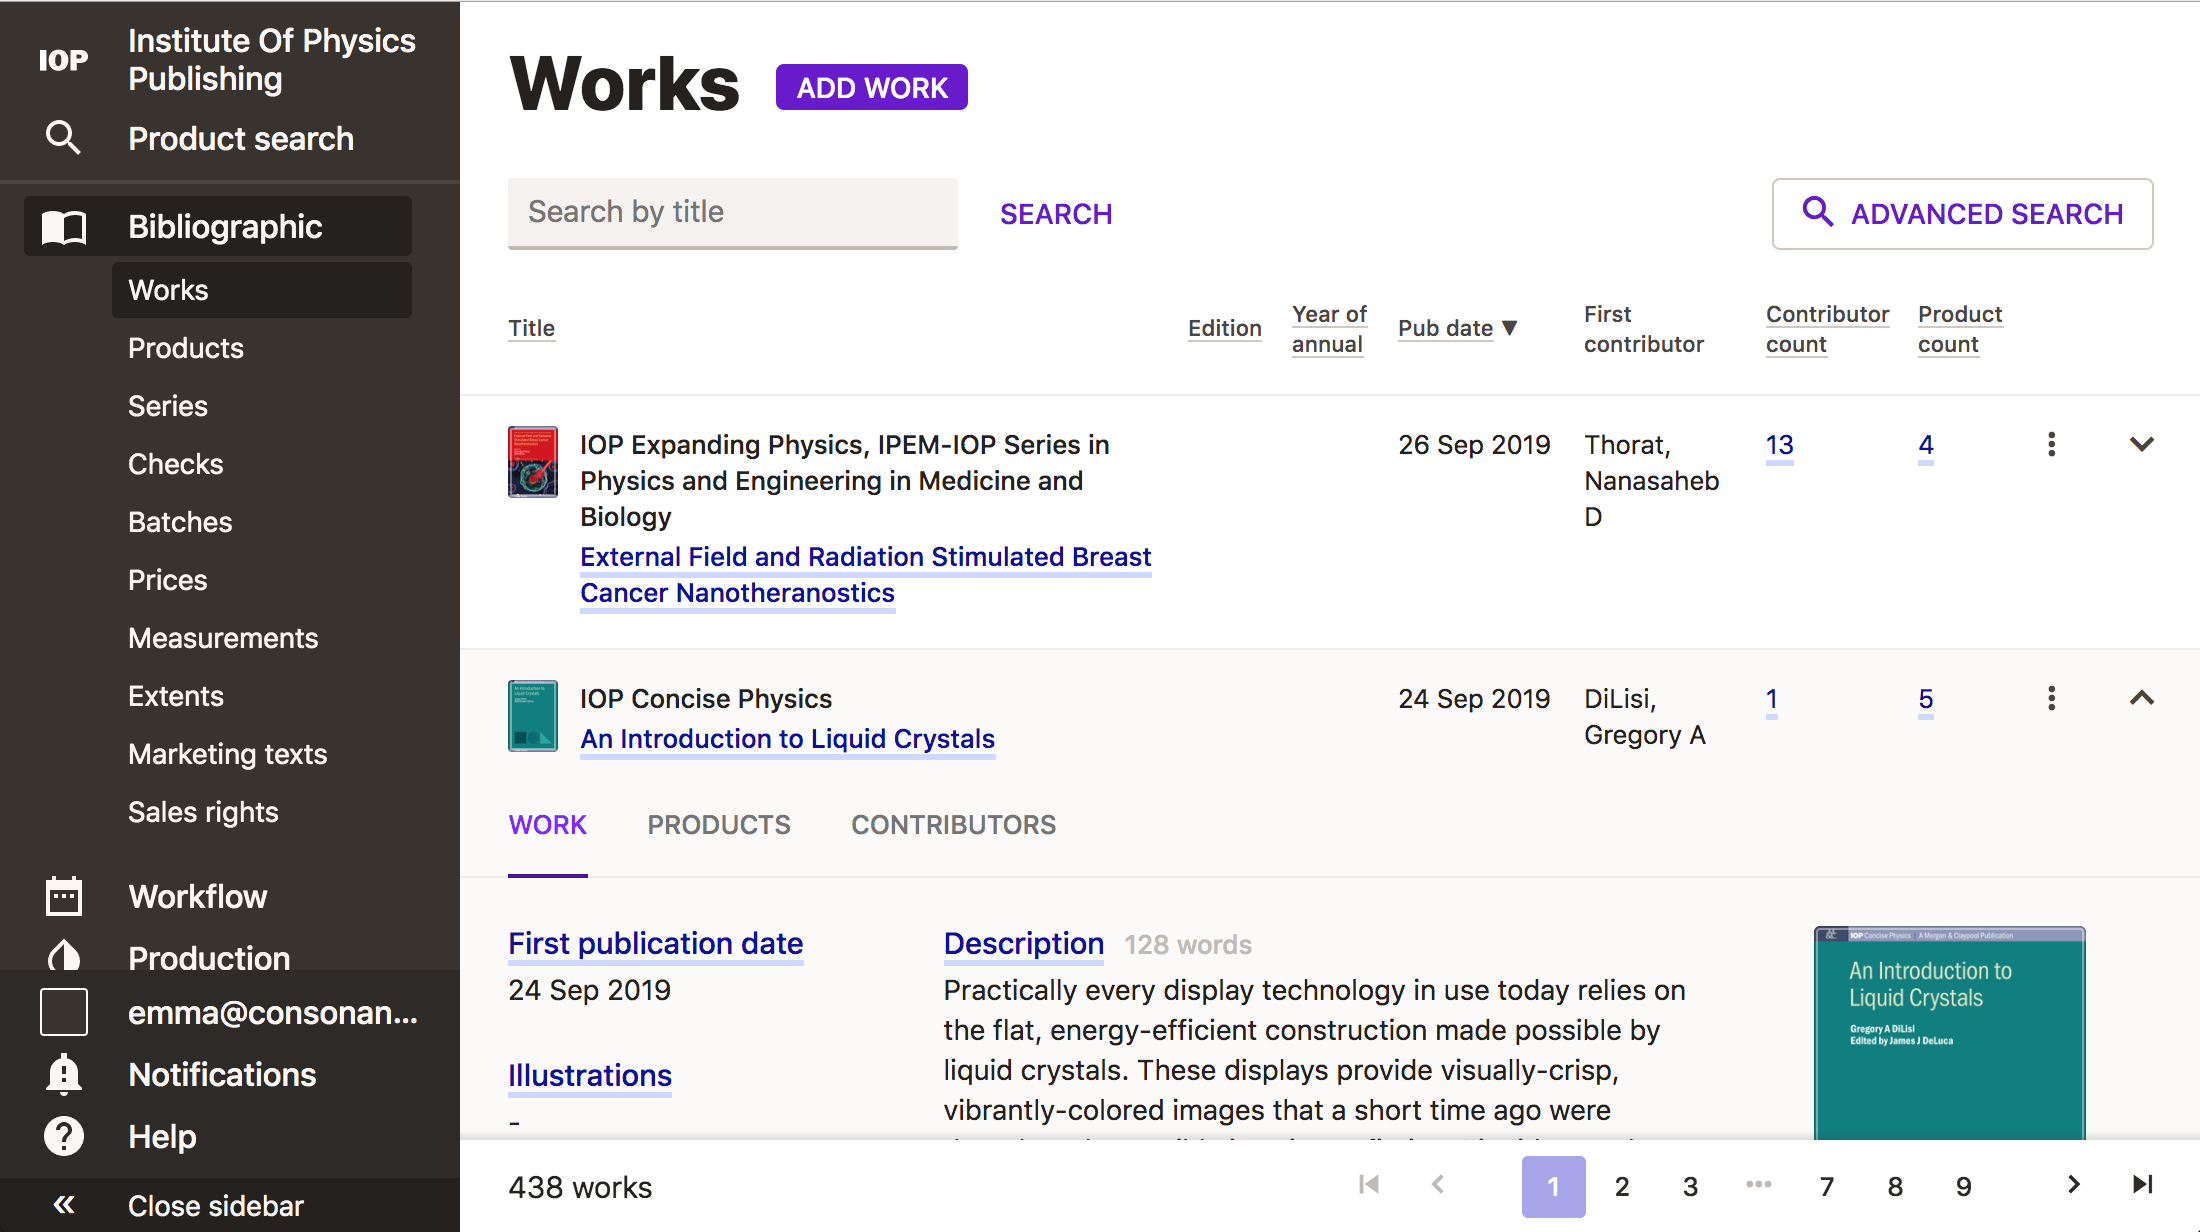 Screenshot showing the works listing page.